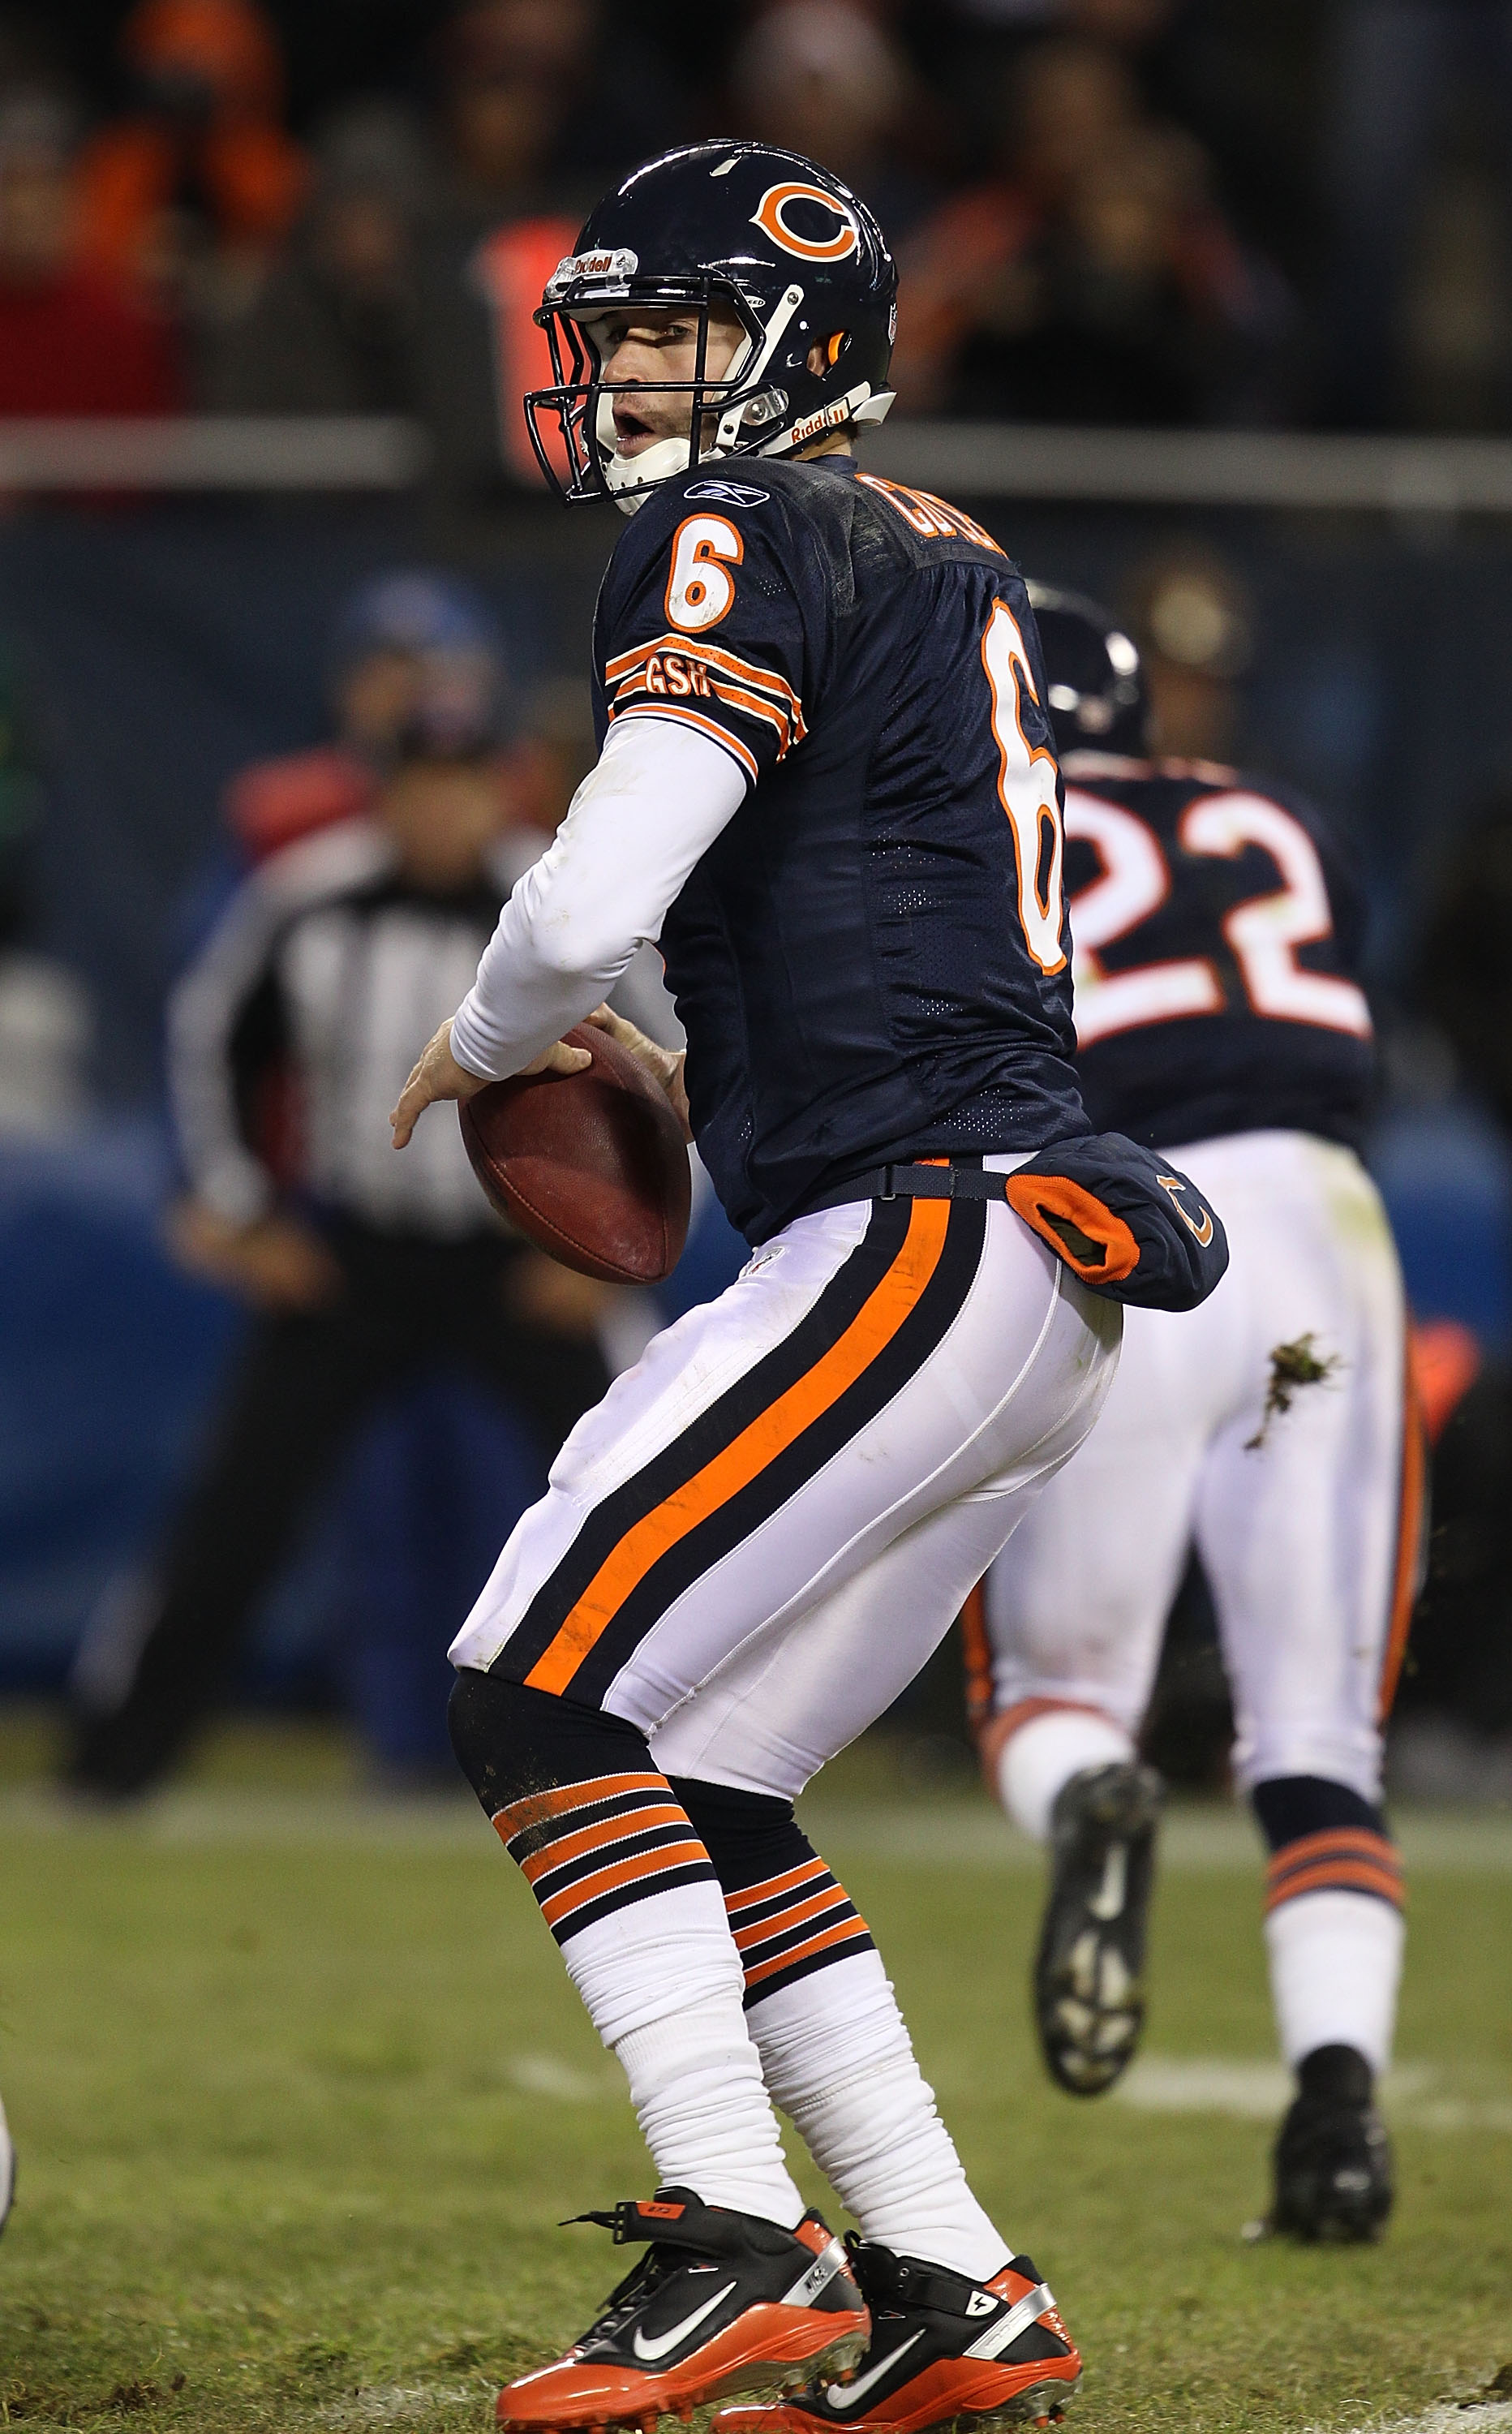 CHICAGO - NOVEMBER 28: Jay Cutler #6 of the Chicago Bears drops back to pass against of the Philadelphia Eagles at Soldier Field on November 28, 2010 in Chicago, Illinois. The Bears defeated the Eagles 31-26. (Photo by Jonathan Daniel/Getty Images)